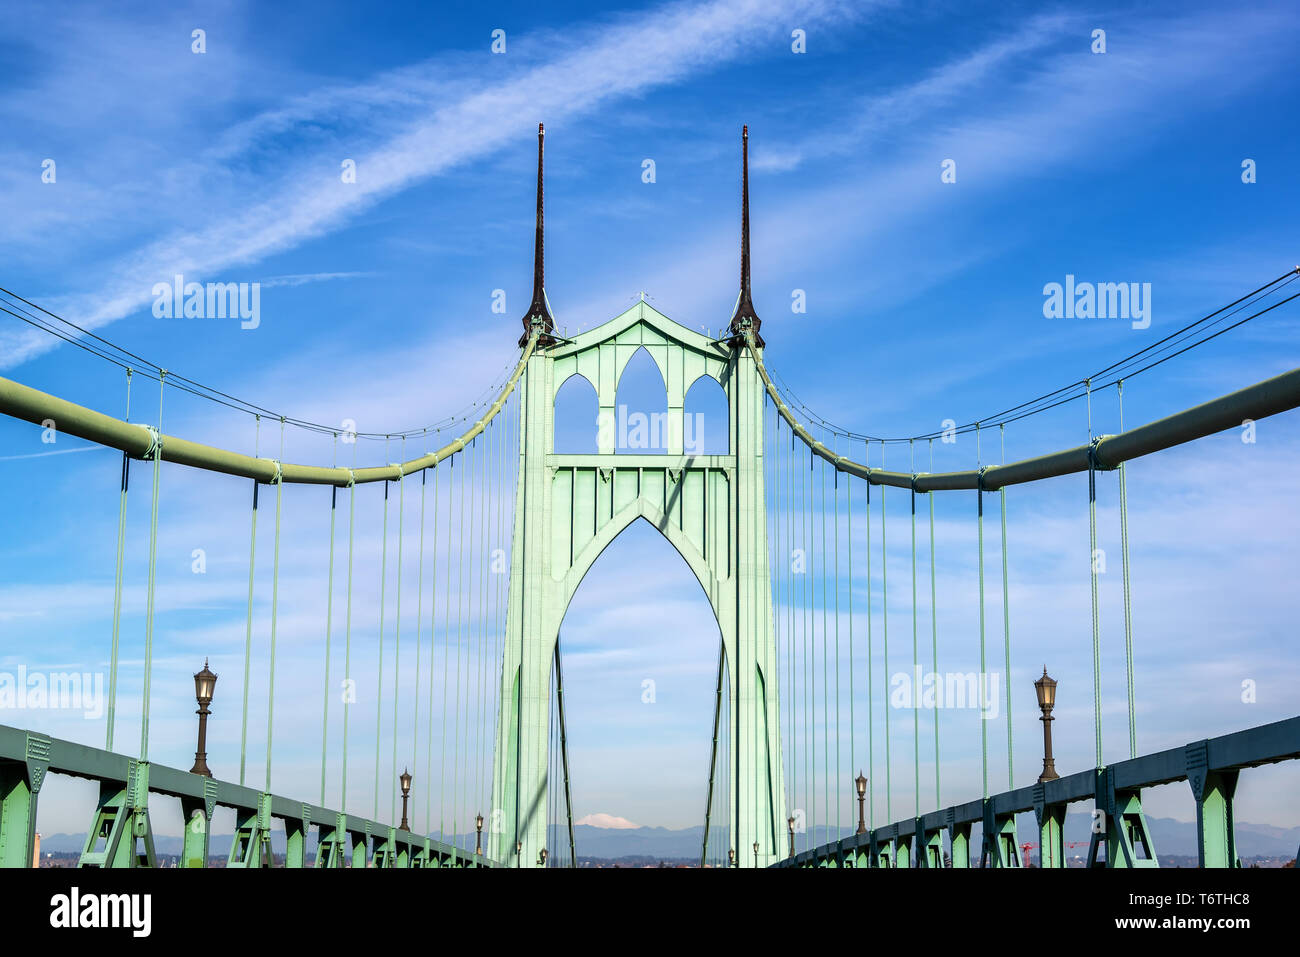 View of the beautiful St. Johns Bridge in Portland, Oregon - Stock Image